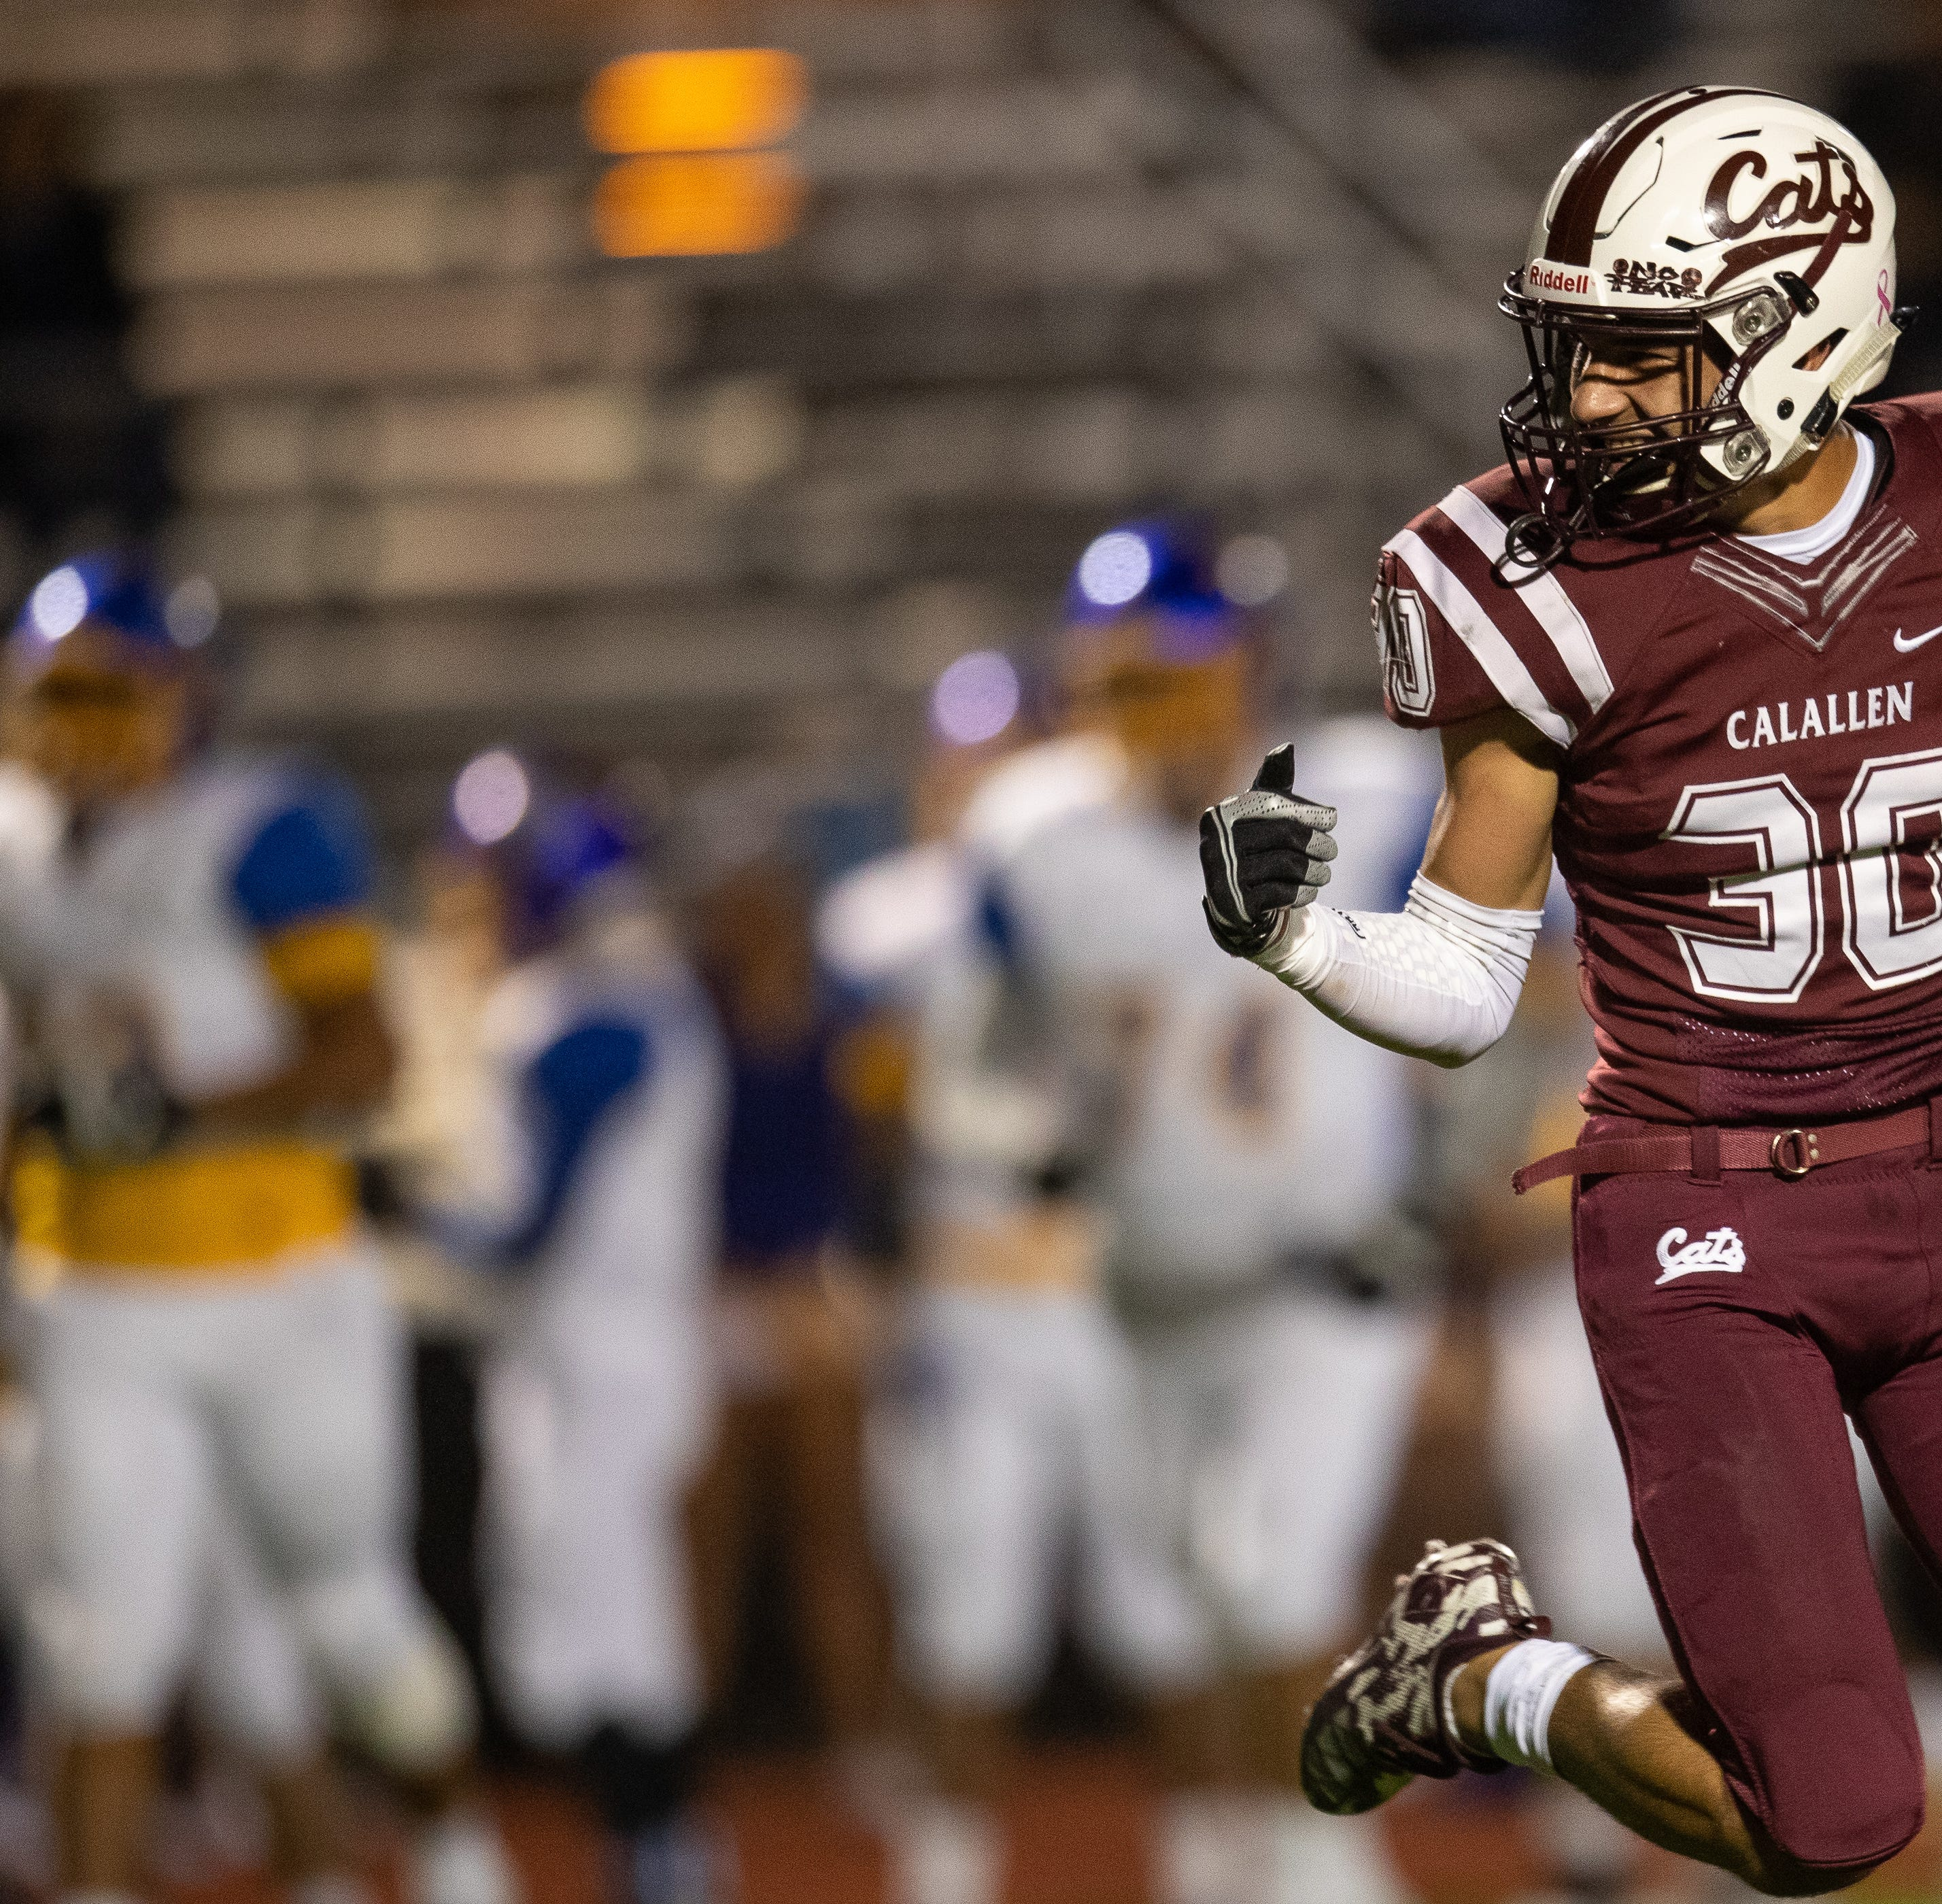 ROOM TO GROW: After starting season young and inexperienced, Calallen finds stride